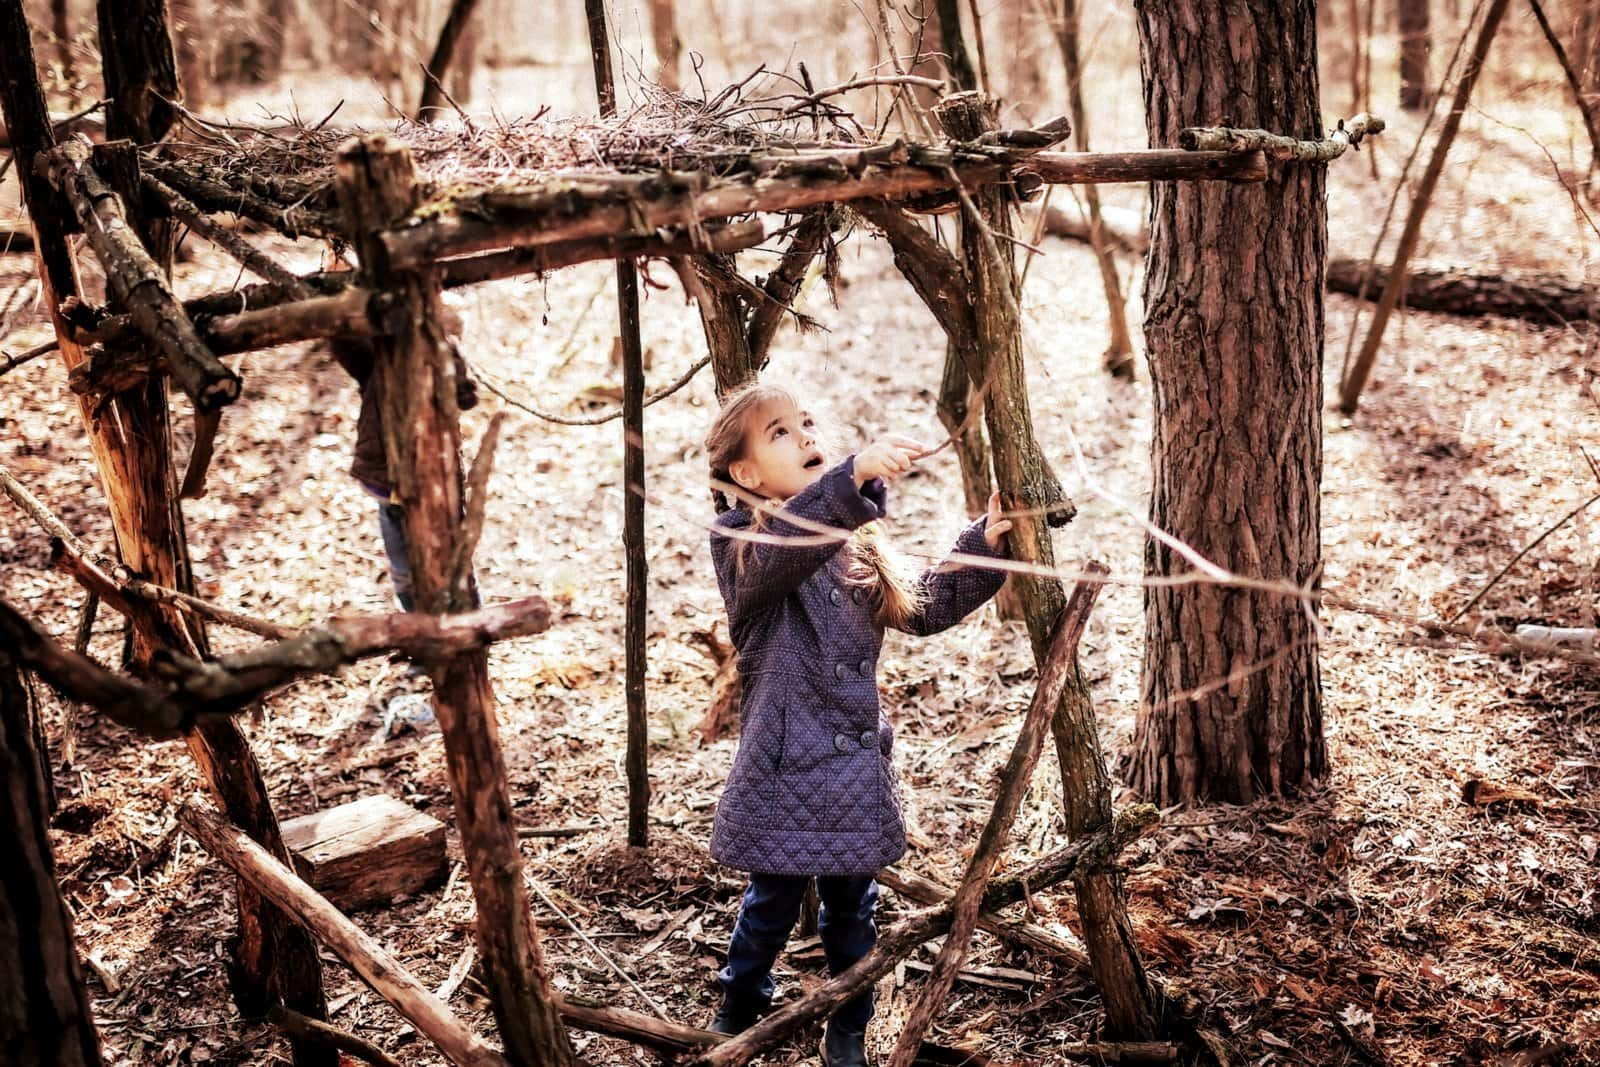 Girl starting to build a tree fort in a forested area